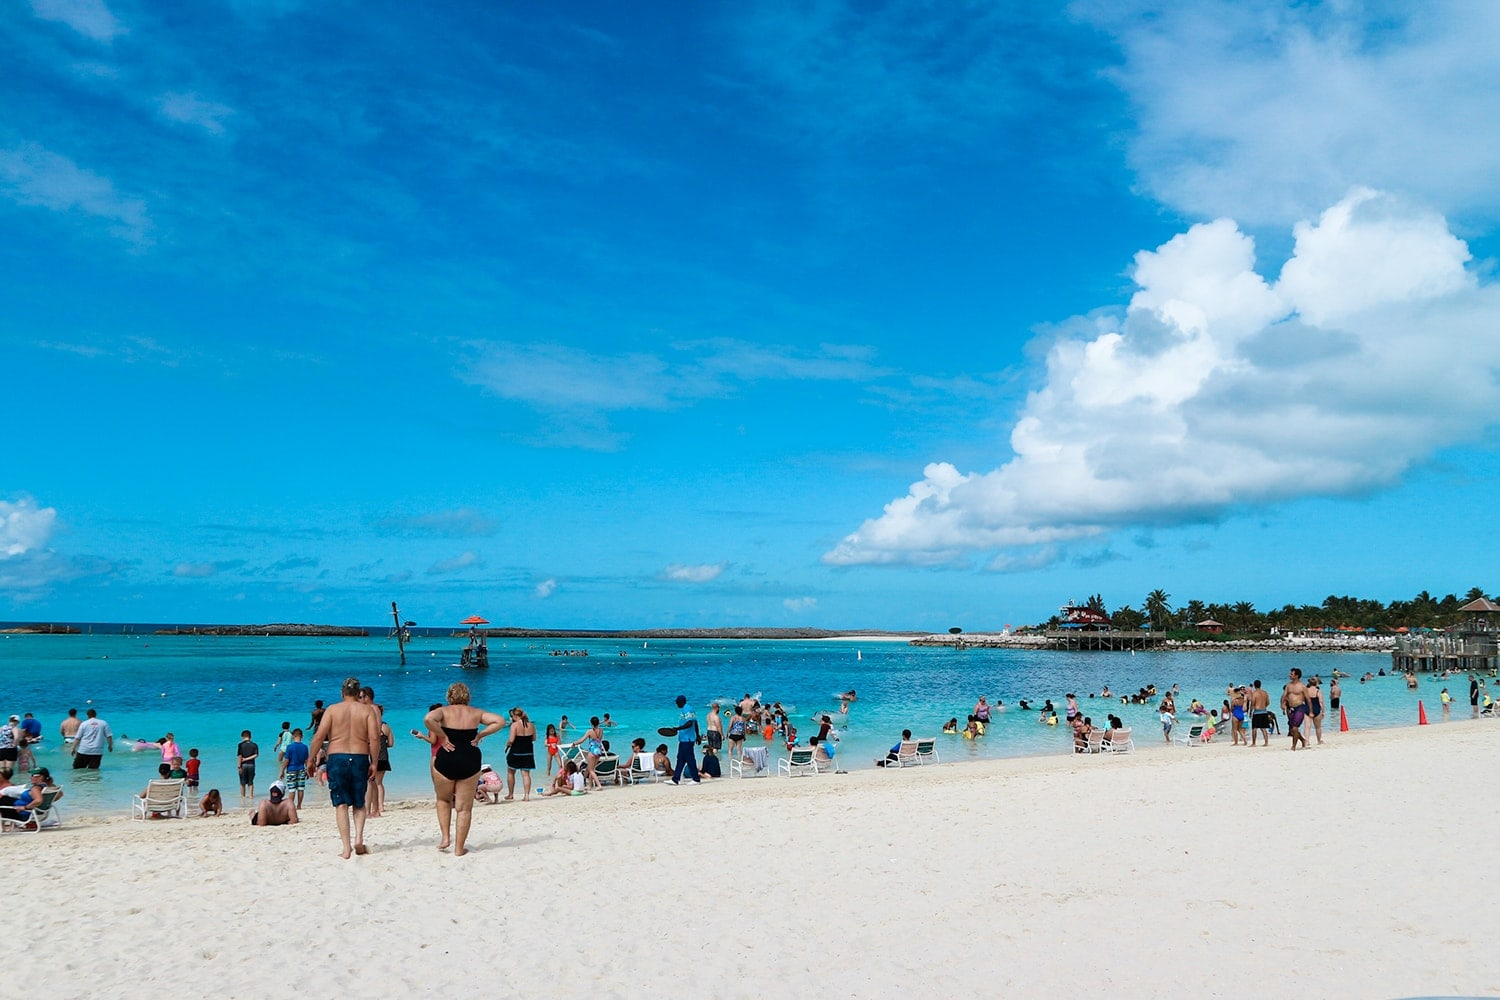 Houston blogger Meg O. on the Go shares about Castaway Cay, Disney's private island